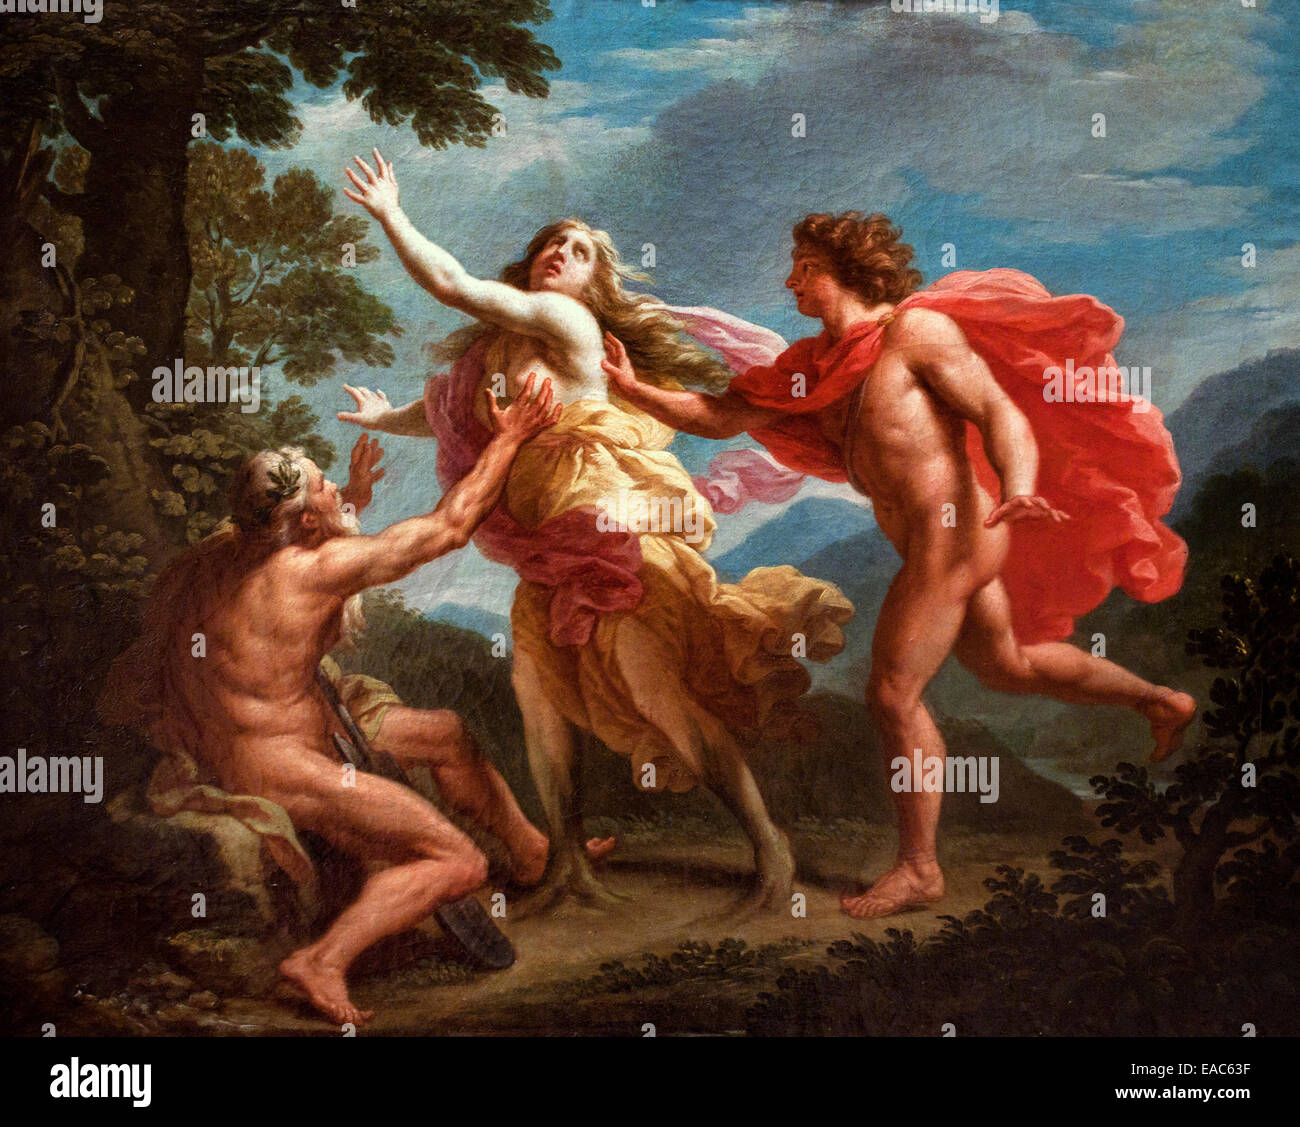 Apollo pursuing Daphne Pietro Bianchi 1694-1740 Italy Italian Apollo clutches Daphne's hip pursuing her as she - Stock Image